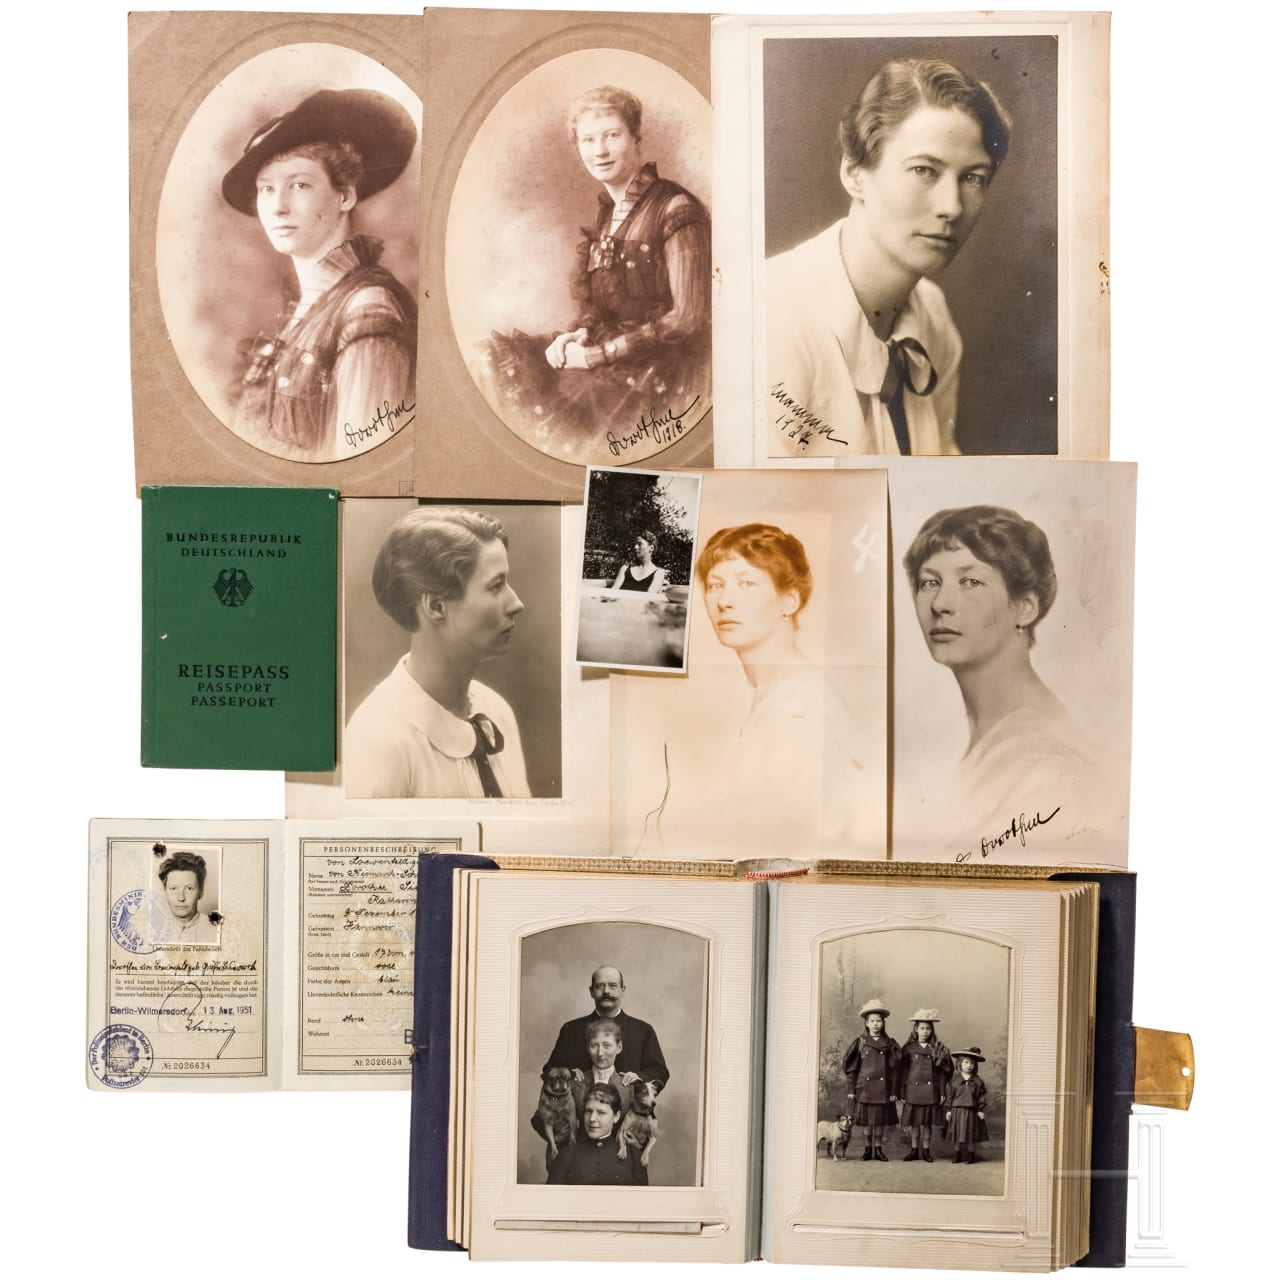 Photos and documents about Dorothee Sibylle Katharina von Bismarck-Schönhausen and her family, 19th / 20th century